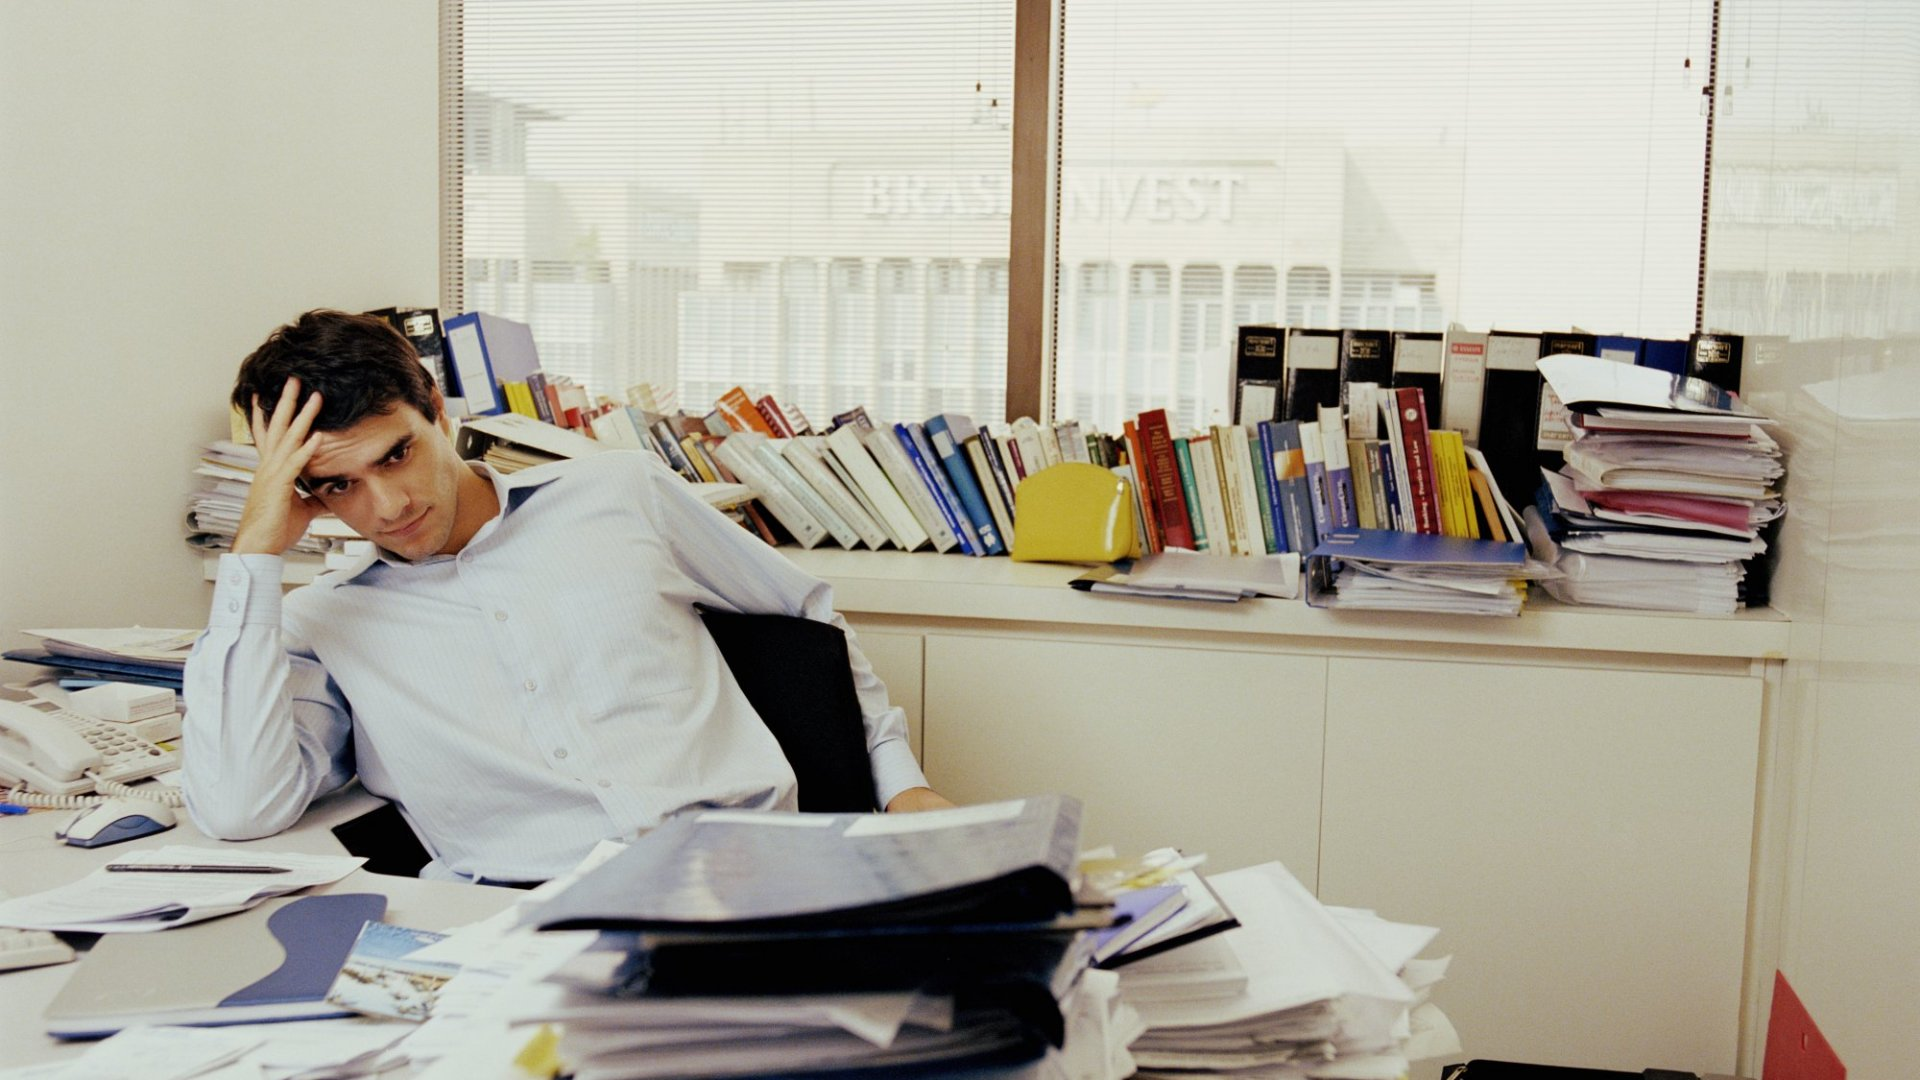 11 Simple Ways To Be A Little More Organized--and A Lot More Productive